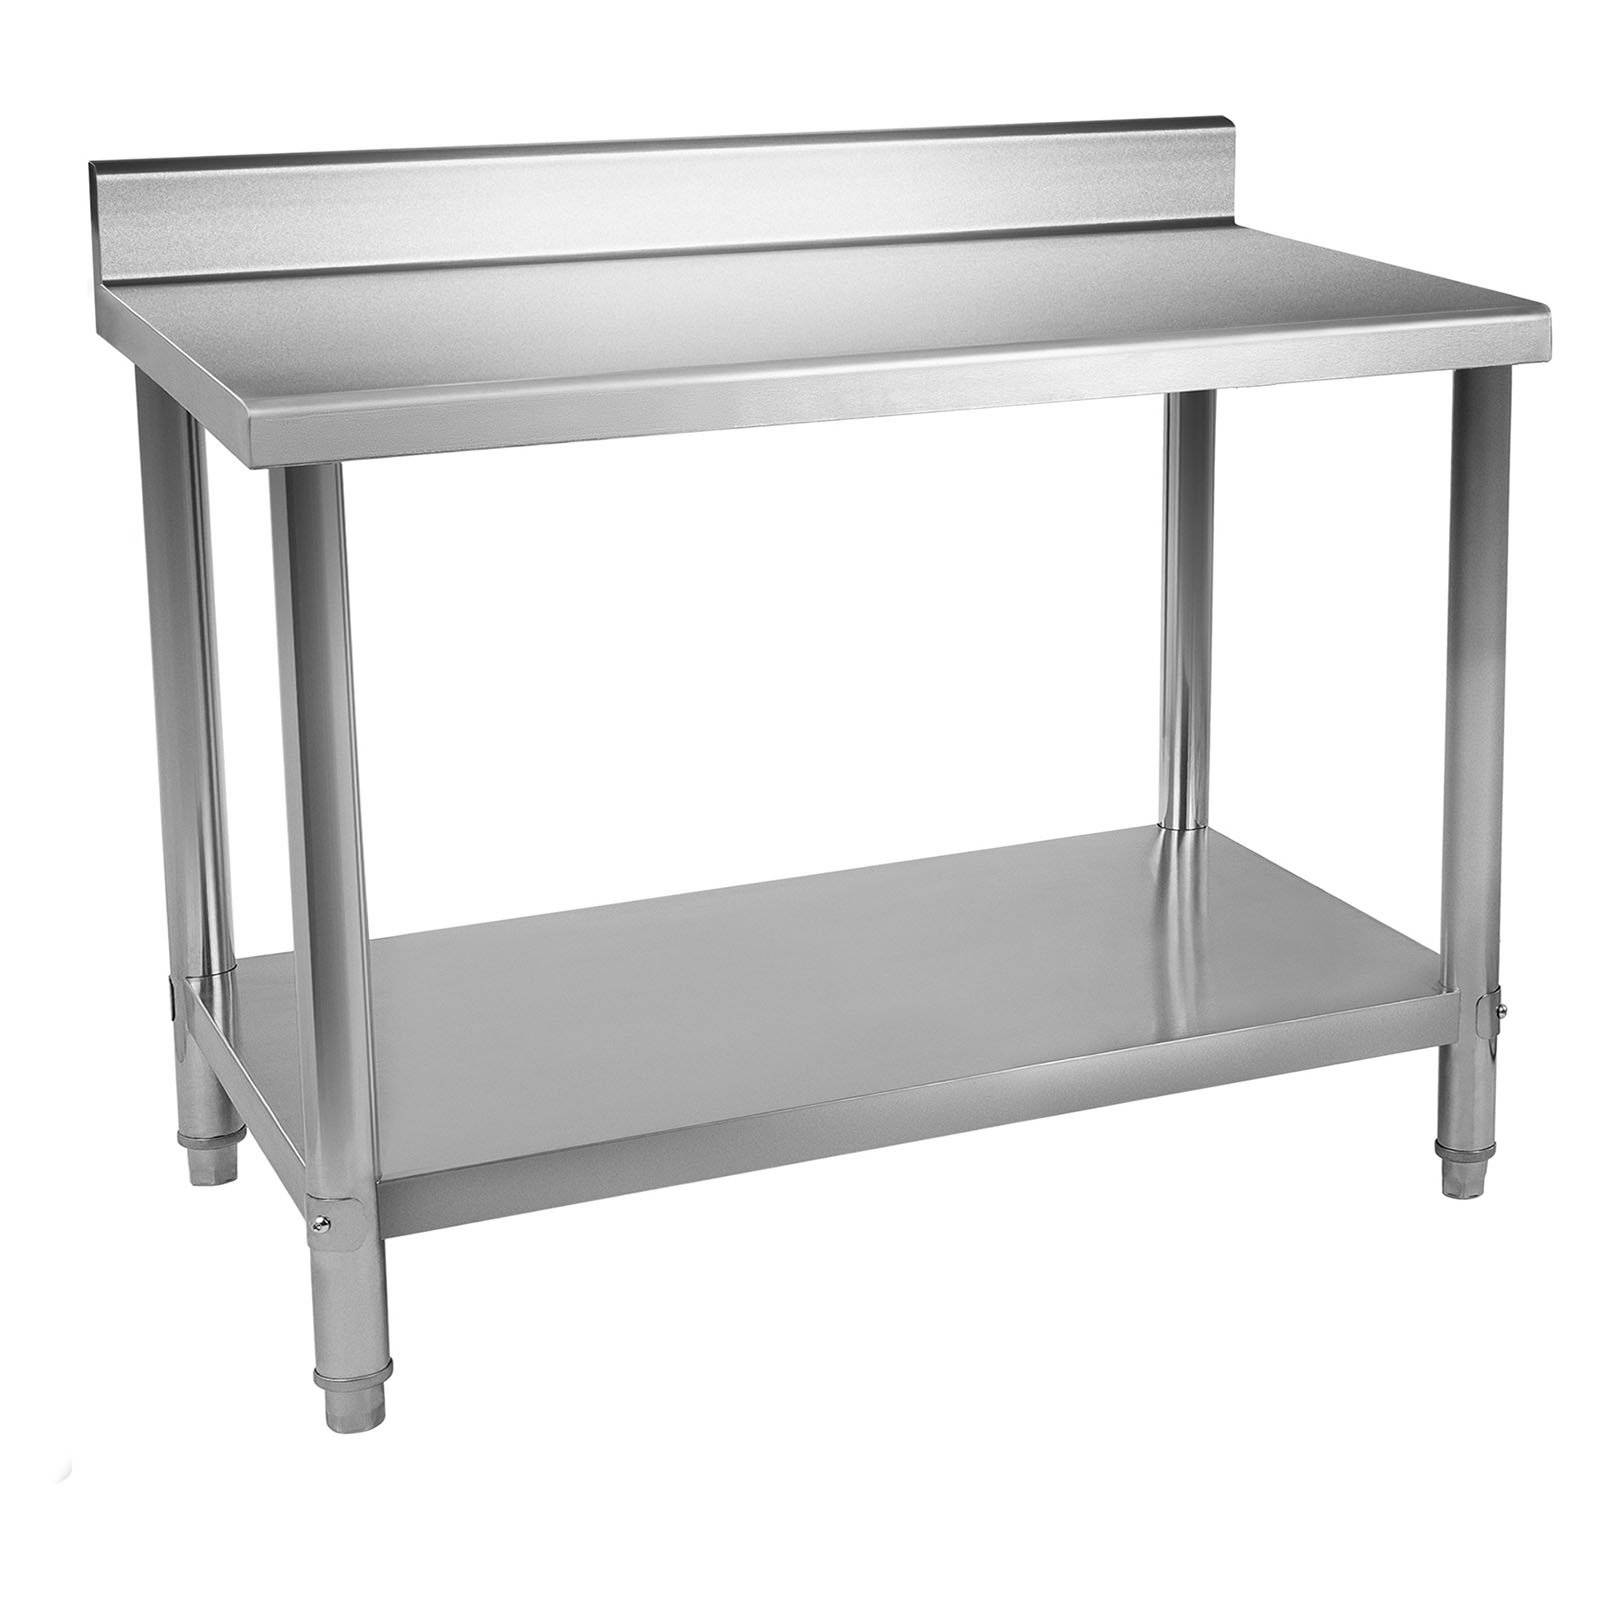 Royal Catering Commercial Stainless Steel Table - 100 x 60 cm - Upstand - 114 kg capacity